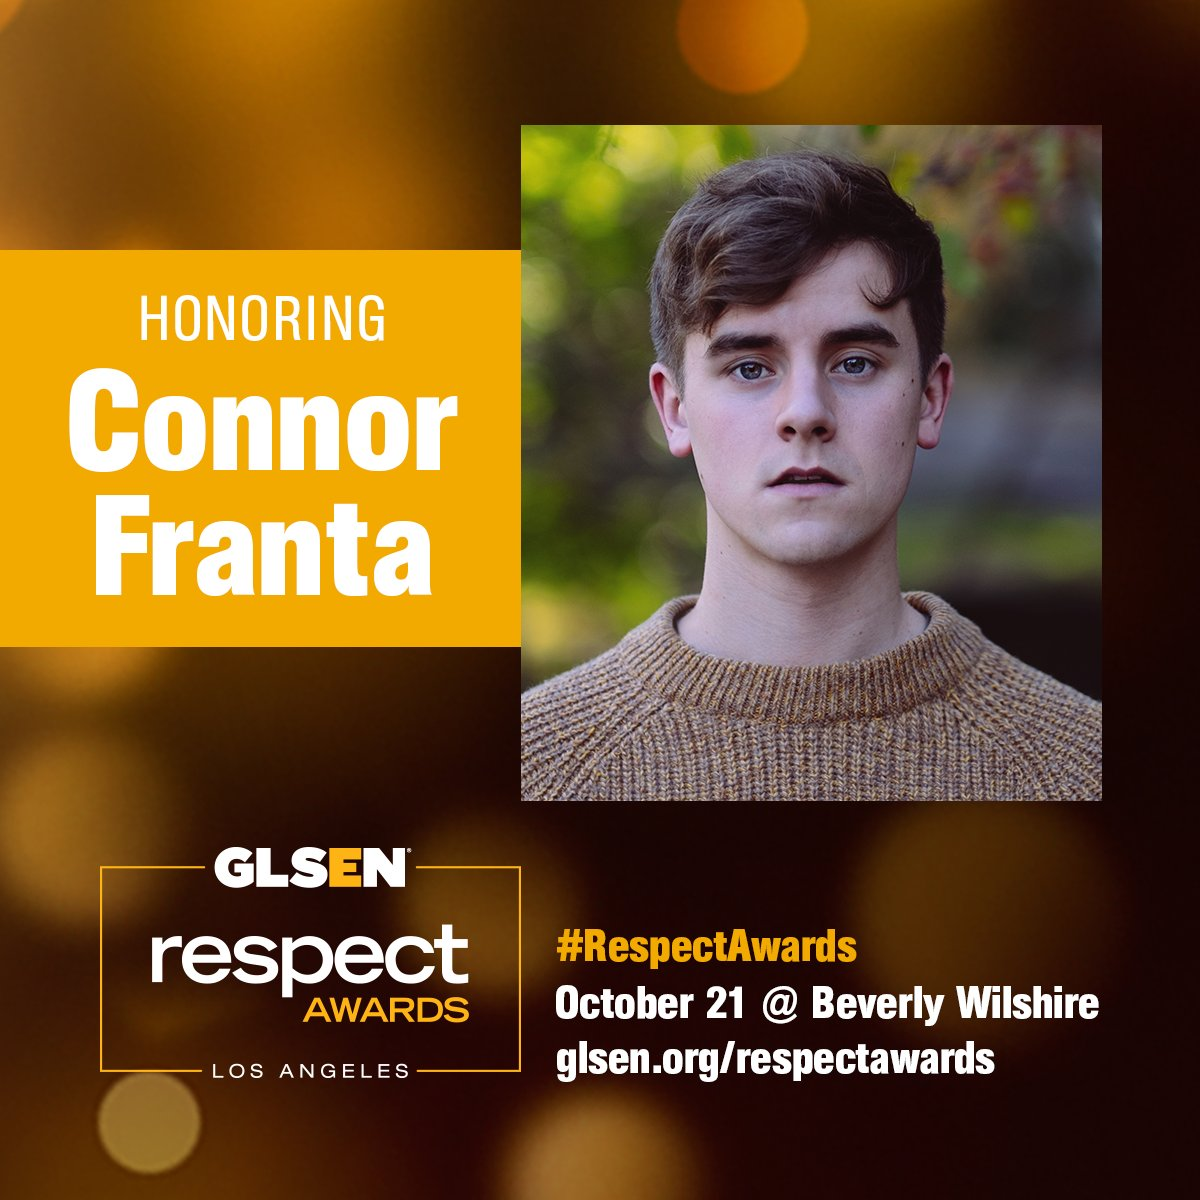 #GLSENproud to honor @ConnorFranta at the #RespectAwards! Read GLSEN's full statement here: https://t.co/NIfdyRChwQ https://t.co/PKXow3an6L